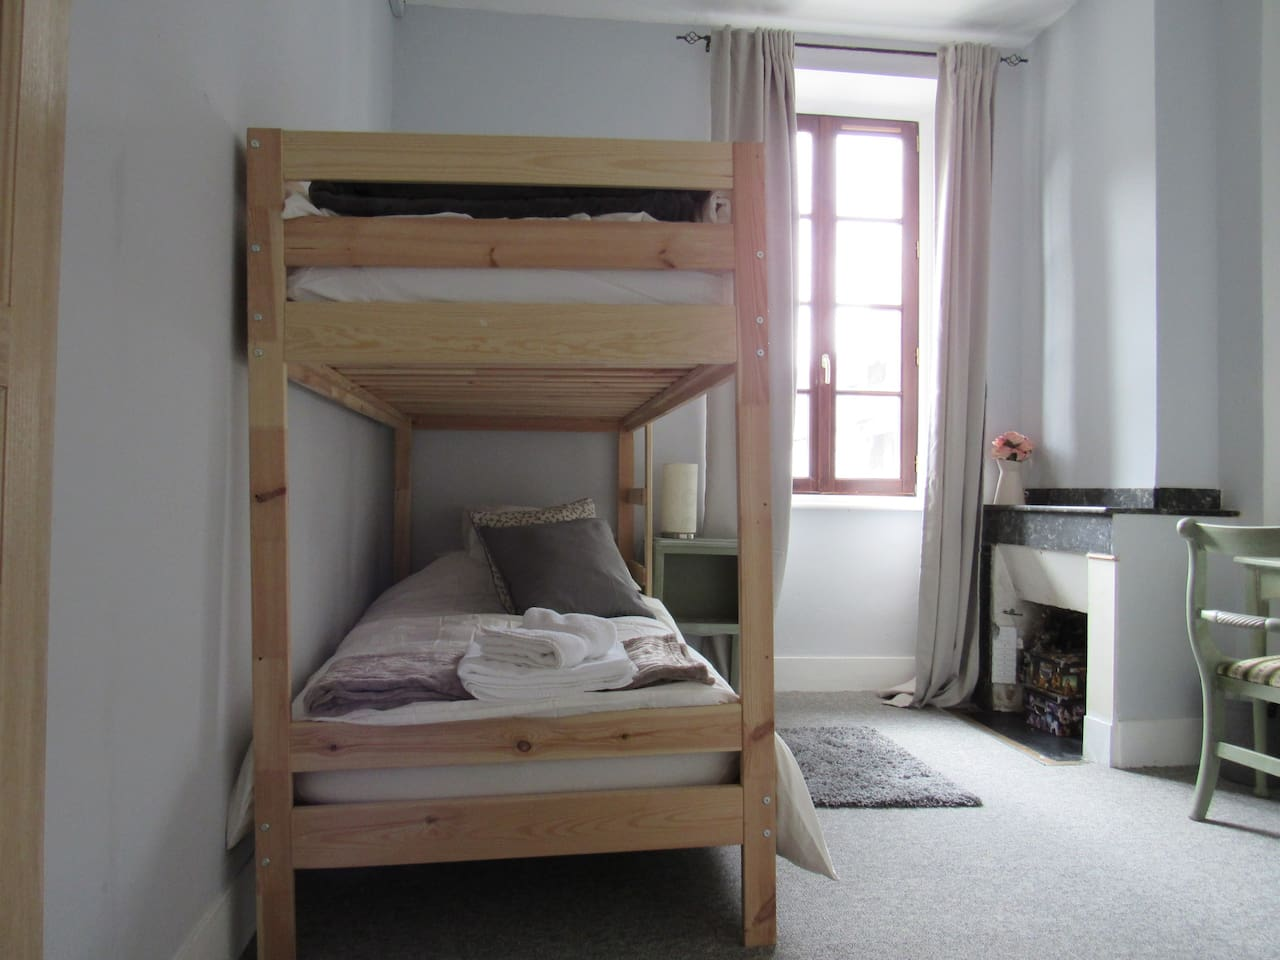 Full size bunk beds for kids over 12 yrs or 1 or 2 adventurous adults